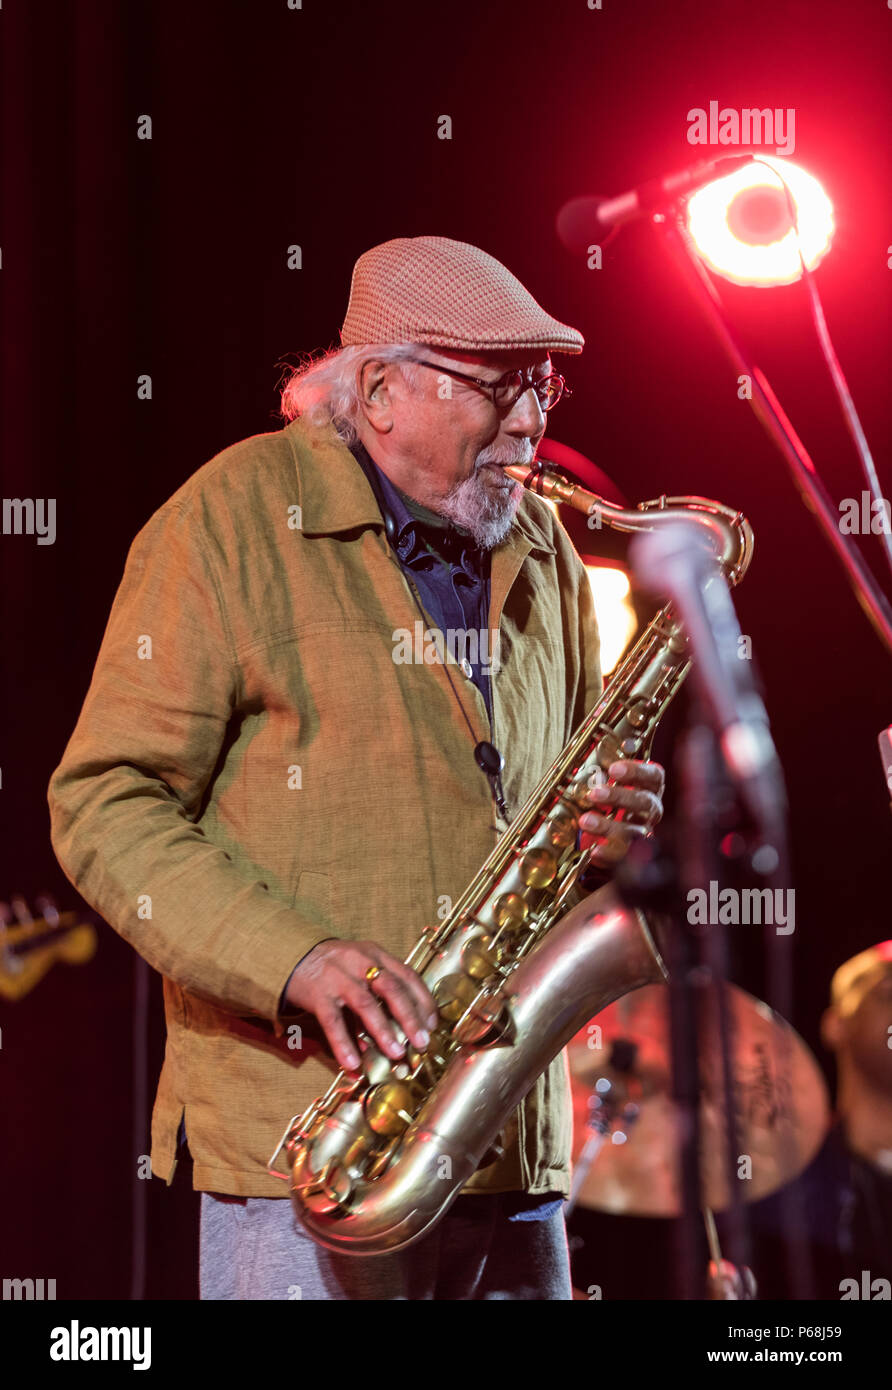 Krakow, Poland - June 28, 2018: Charles Lloyd & The Marvels and Bill Frisell live on stage of Kijow.Centre at the Summer Jazz Festival in Krakow. Poland Credit: Wieslaw Jarek/Alamy Live News Stock Photo